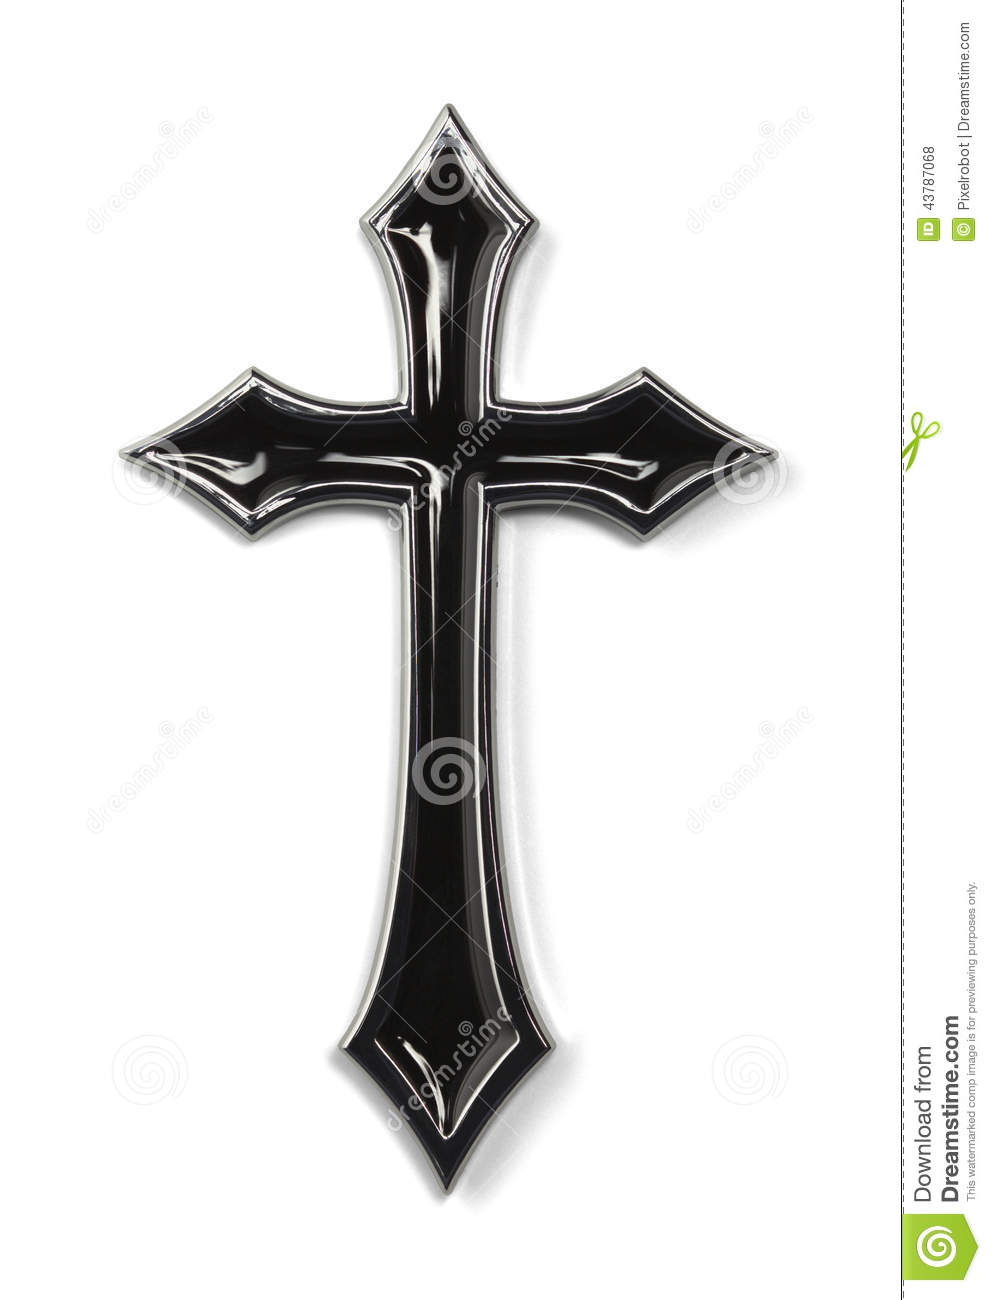 black pointed cross stock photo image 43787068 Crown of Thorns Drawing Crown of Thorns Drawing